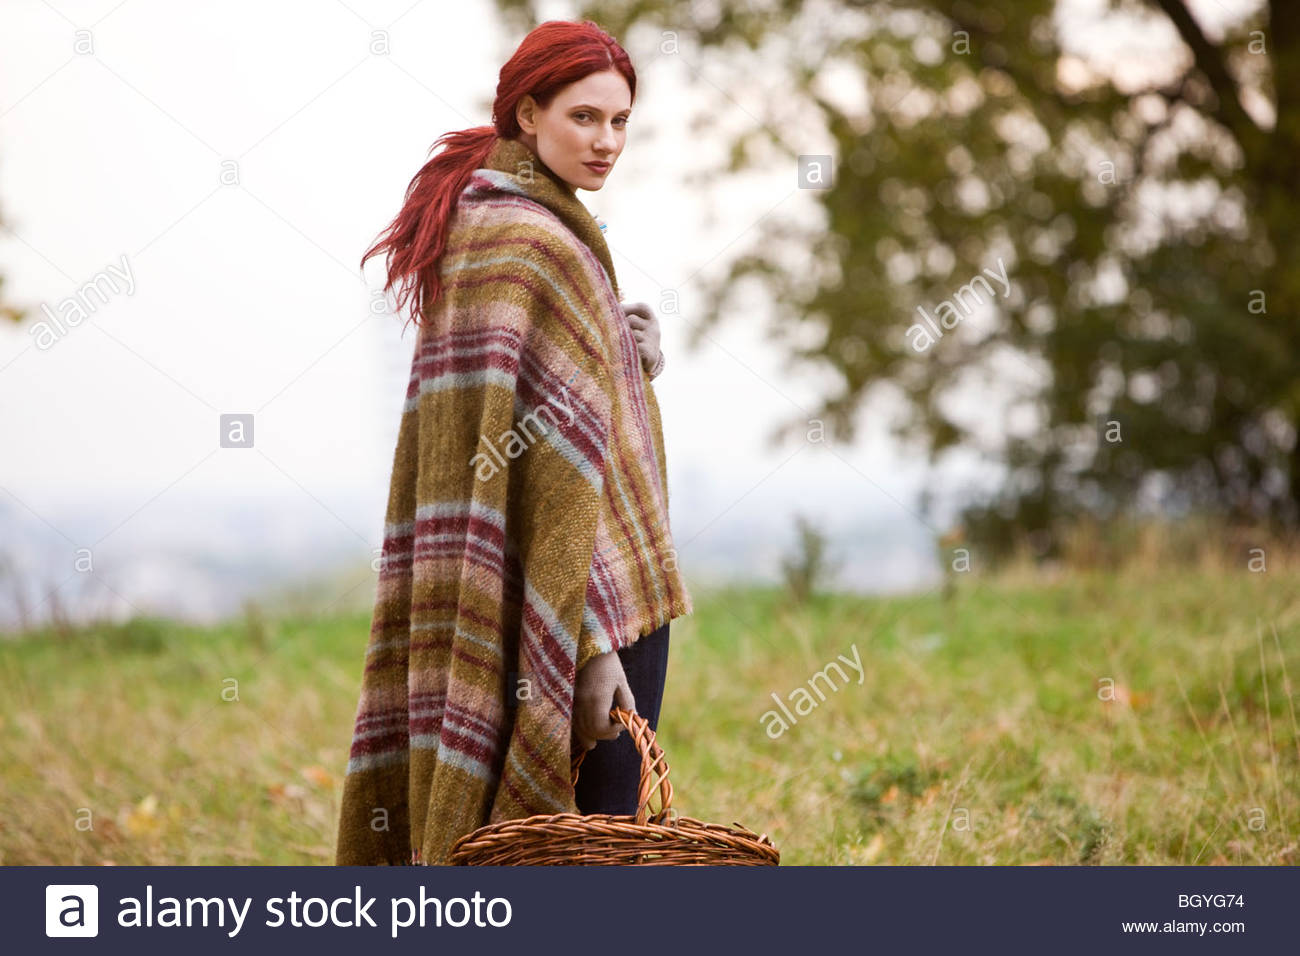 A young woman wrapped in a blanket, holding a wicker basket - Stock Image